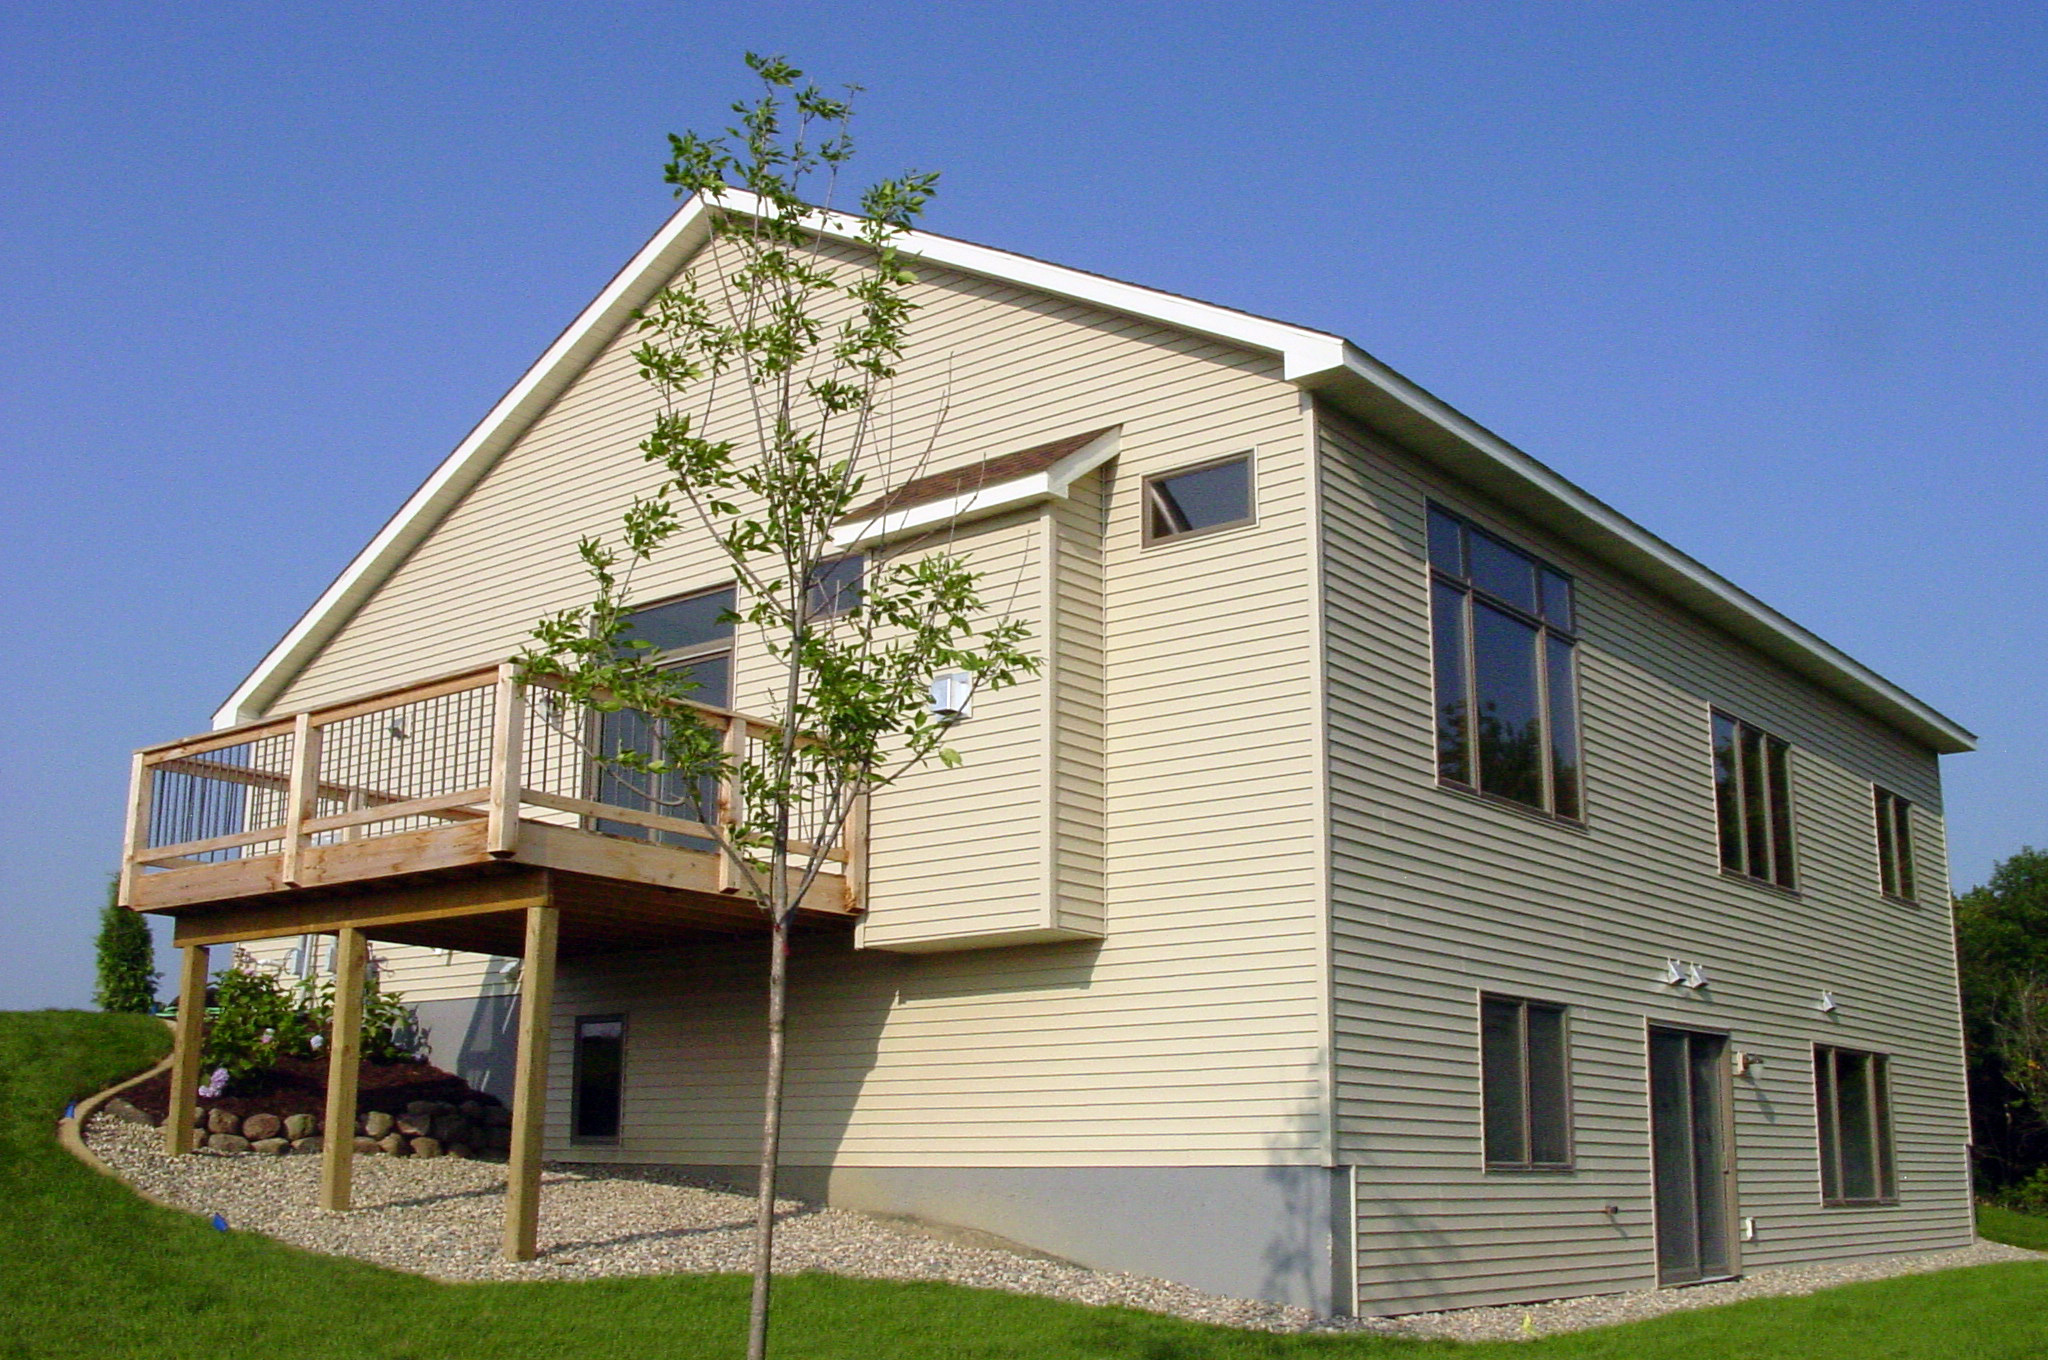 Large raised deck on side of house